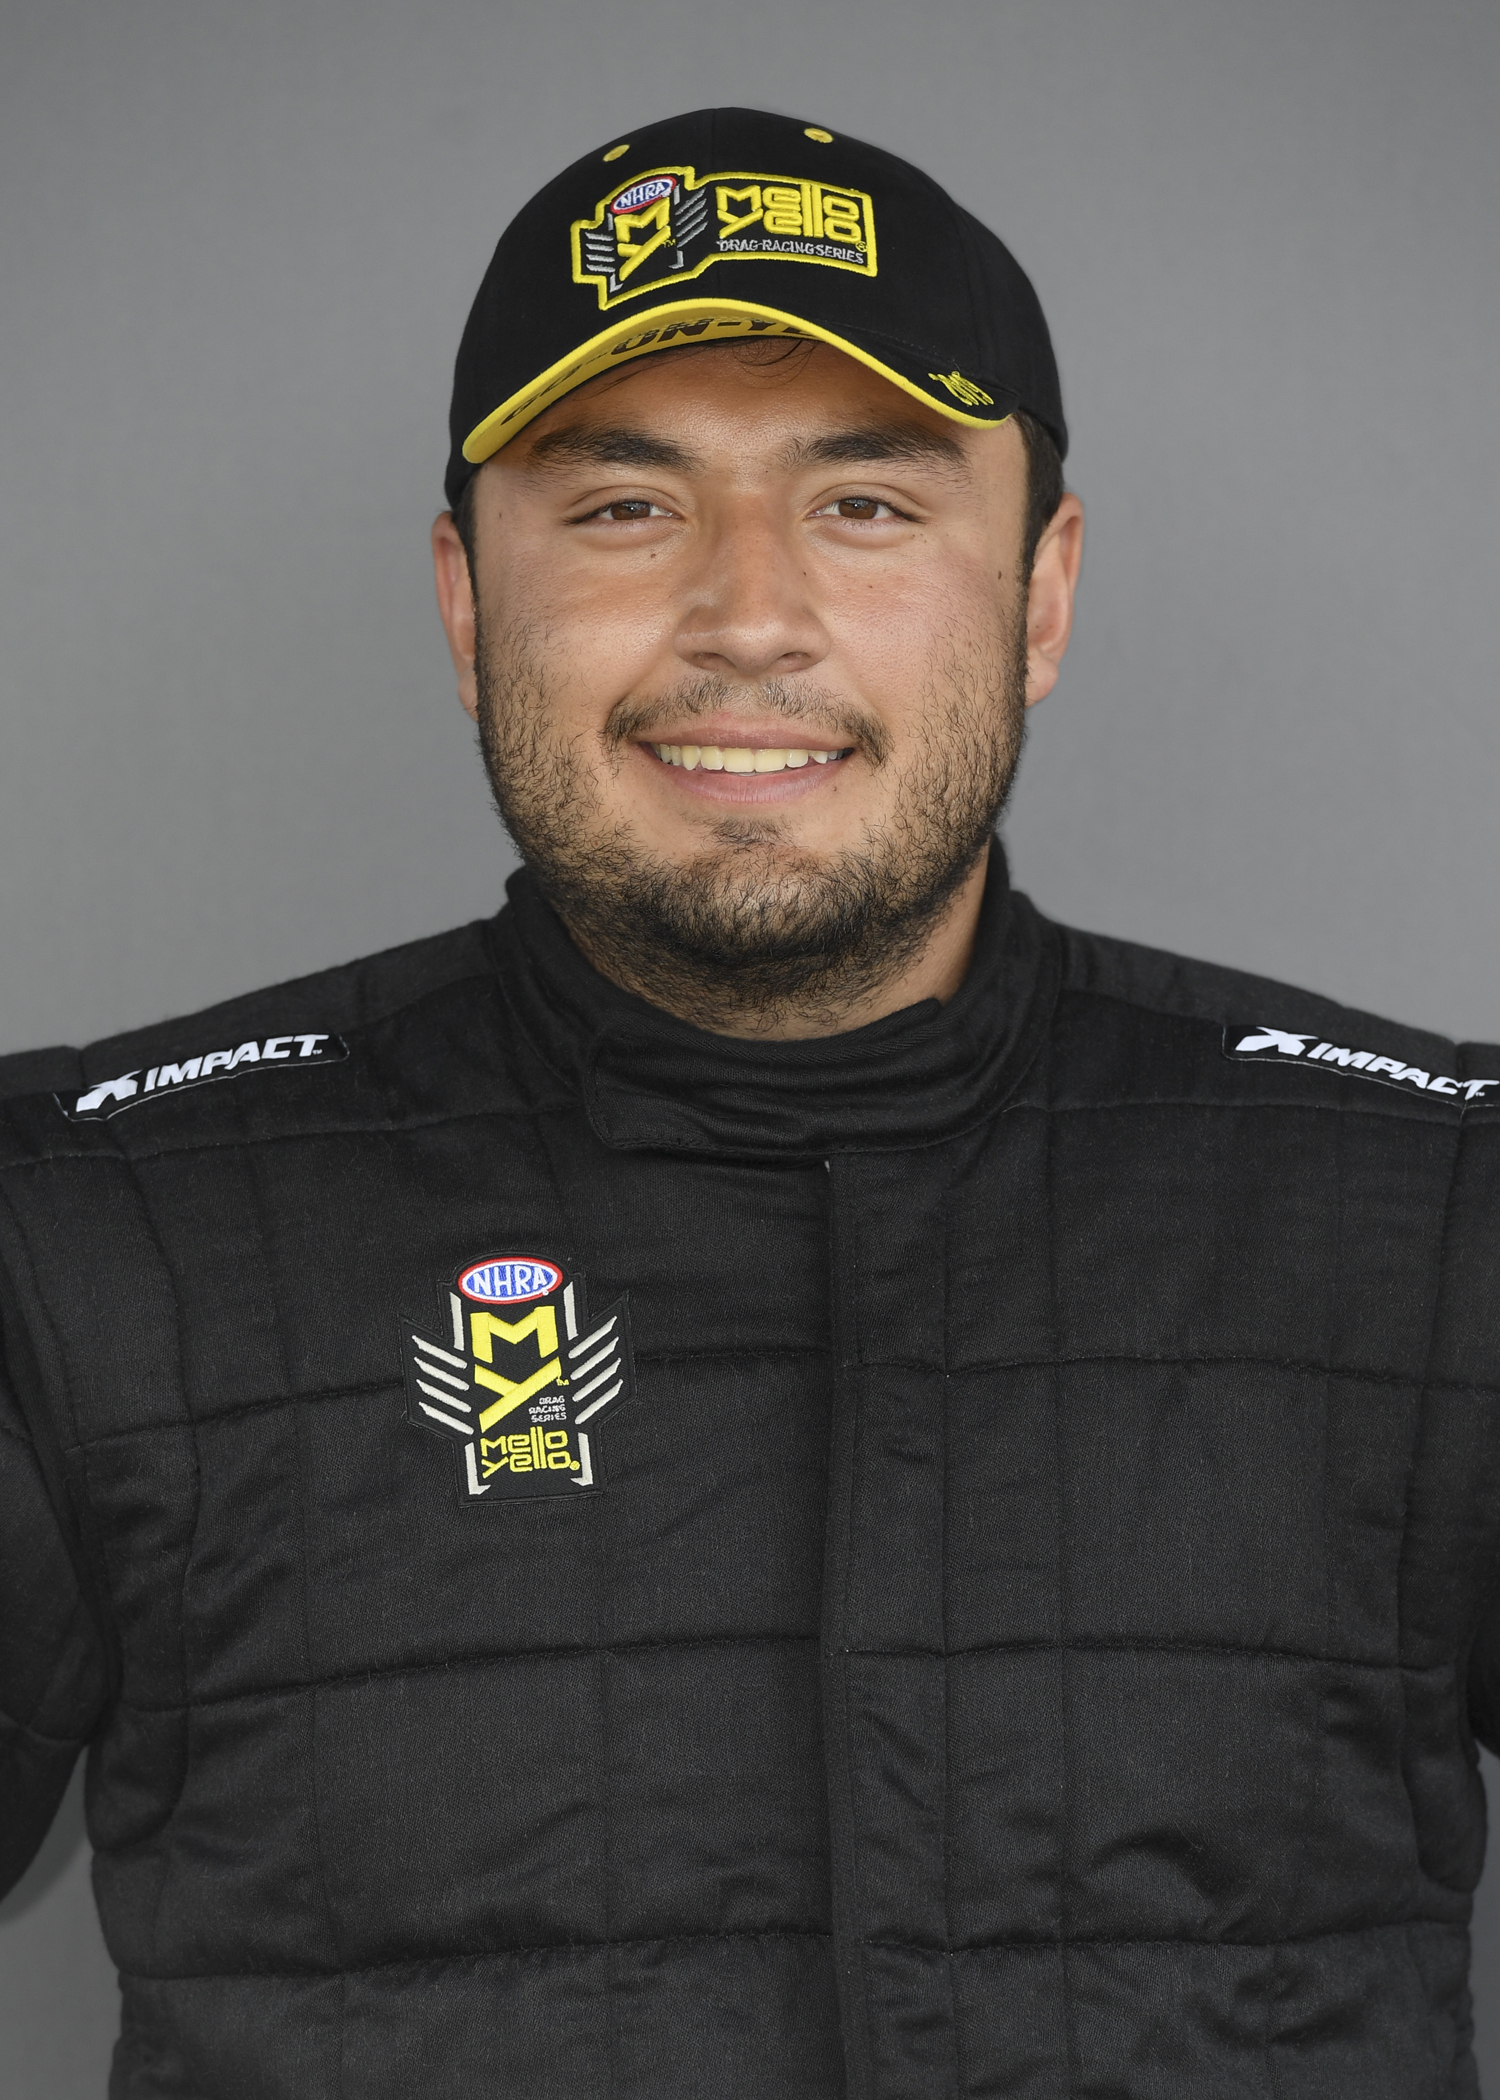 191026 Seven Rookie Candidates Eligible for 2019 Auto Club Road to the Future Award - Fernando Cuadra Jr.